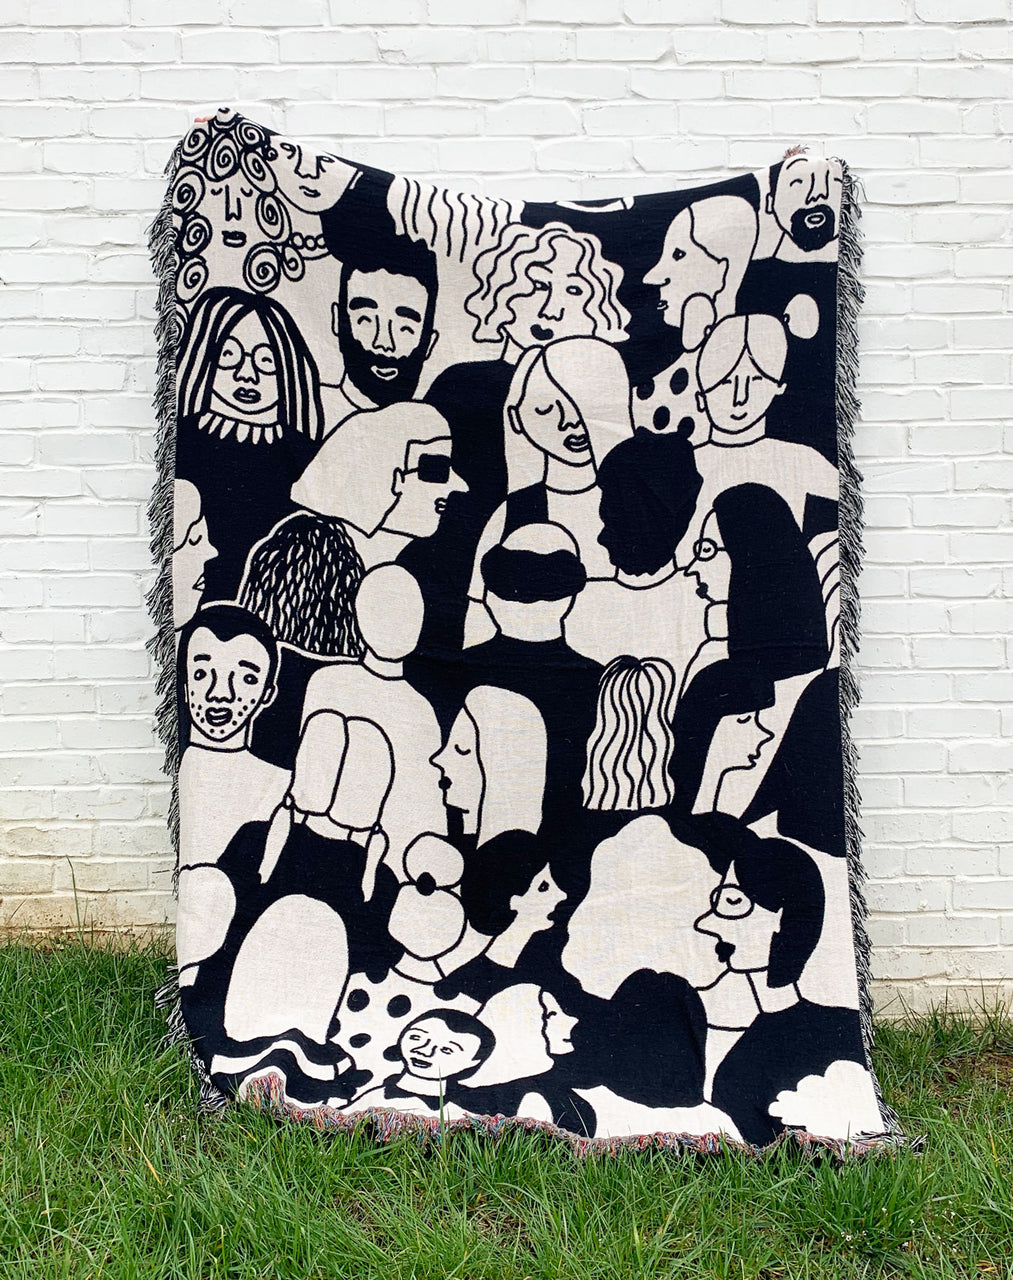 Crowd Woven Blanket